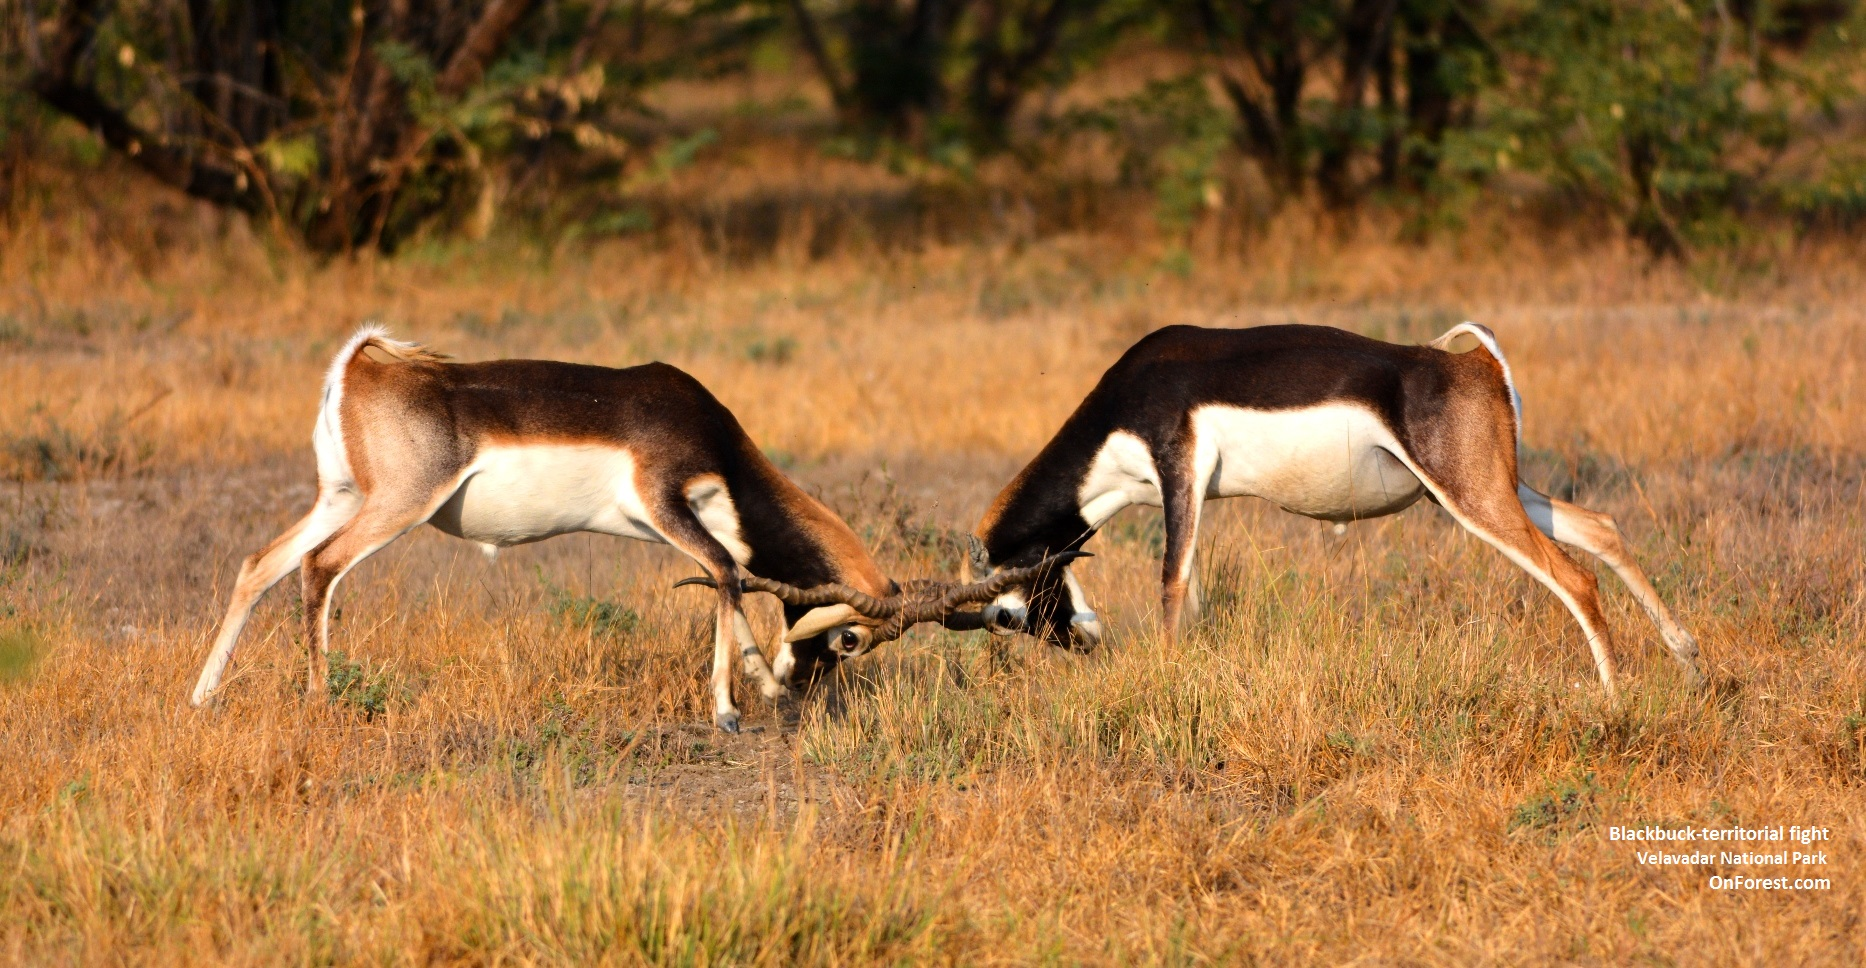 Blackbuck territorial fight, Velavadar National Park